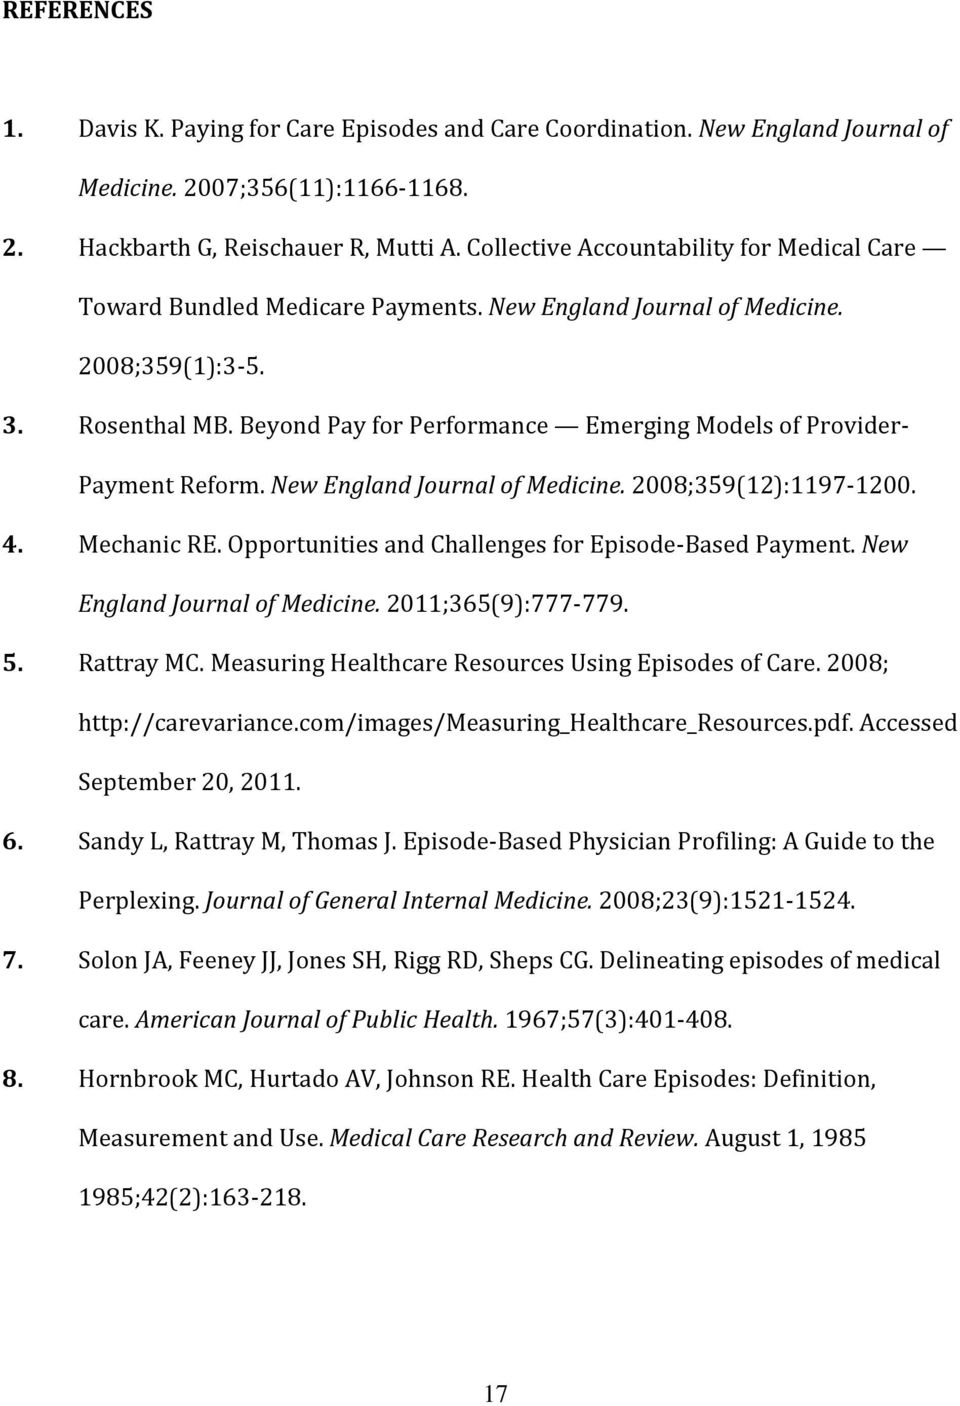 Beyond Pay for Performance Emerging Models of Provider- Payment Reform. New England Journal of Medicine. 2008;359(12):1197-1200. 4. Mechanic RE. Opportunities and Challenges for Episode-Based Payment.